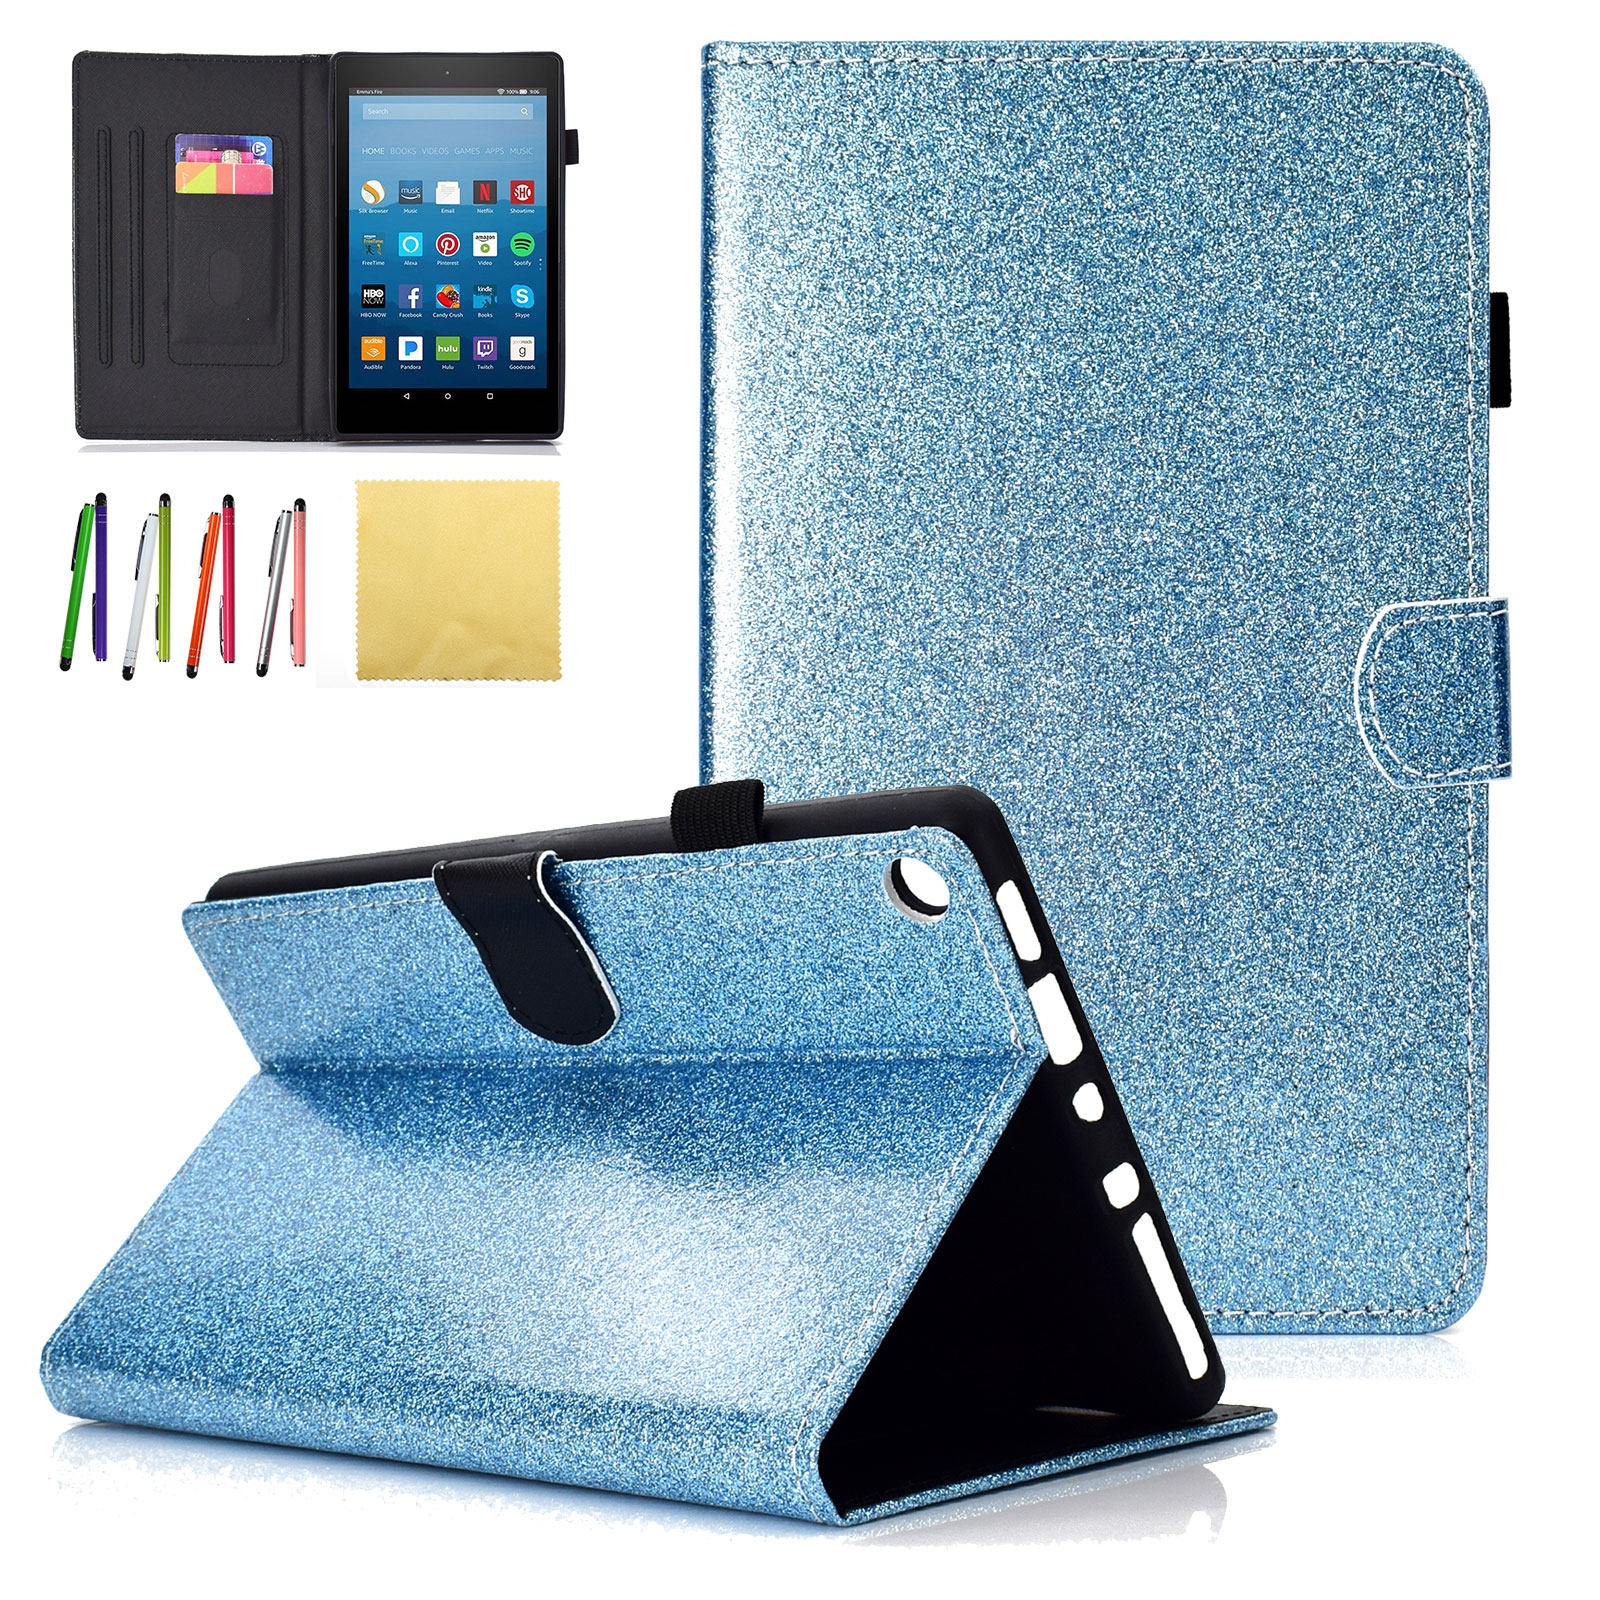 Fire HD 8 2018 2017 2016 & 2015 Kids Case, Goodest Slim Folio Glitter Stand Smart Case Covers w/Auto Sleep/Wake for All New Amazon Kindle Fire HD 8.0 inch (8th 7th 6th 5th Generation), Blue